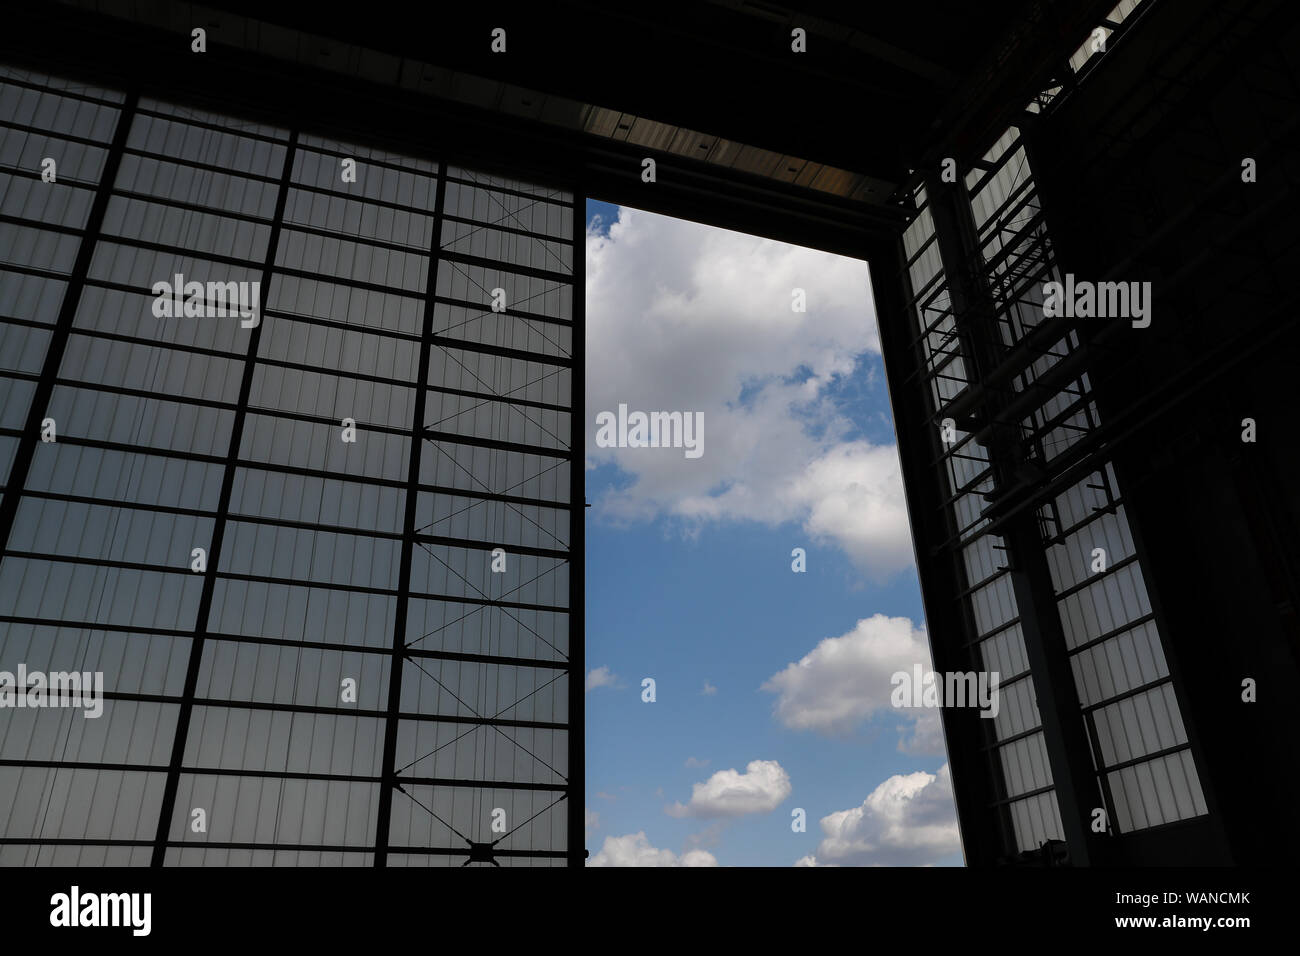 Schkeuditz, Germany. 21st Aug, 2019. View from a DHL hangar onto the blue sky at the edge of the National Aviation Conference at Leipzig-Halle Airport. Credit: Jan Woitas/dpa-Zentralbild/dpa/Alamy Live News Stock Photo